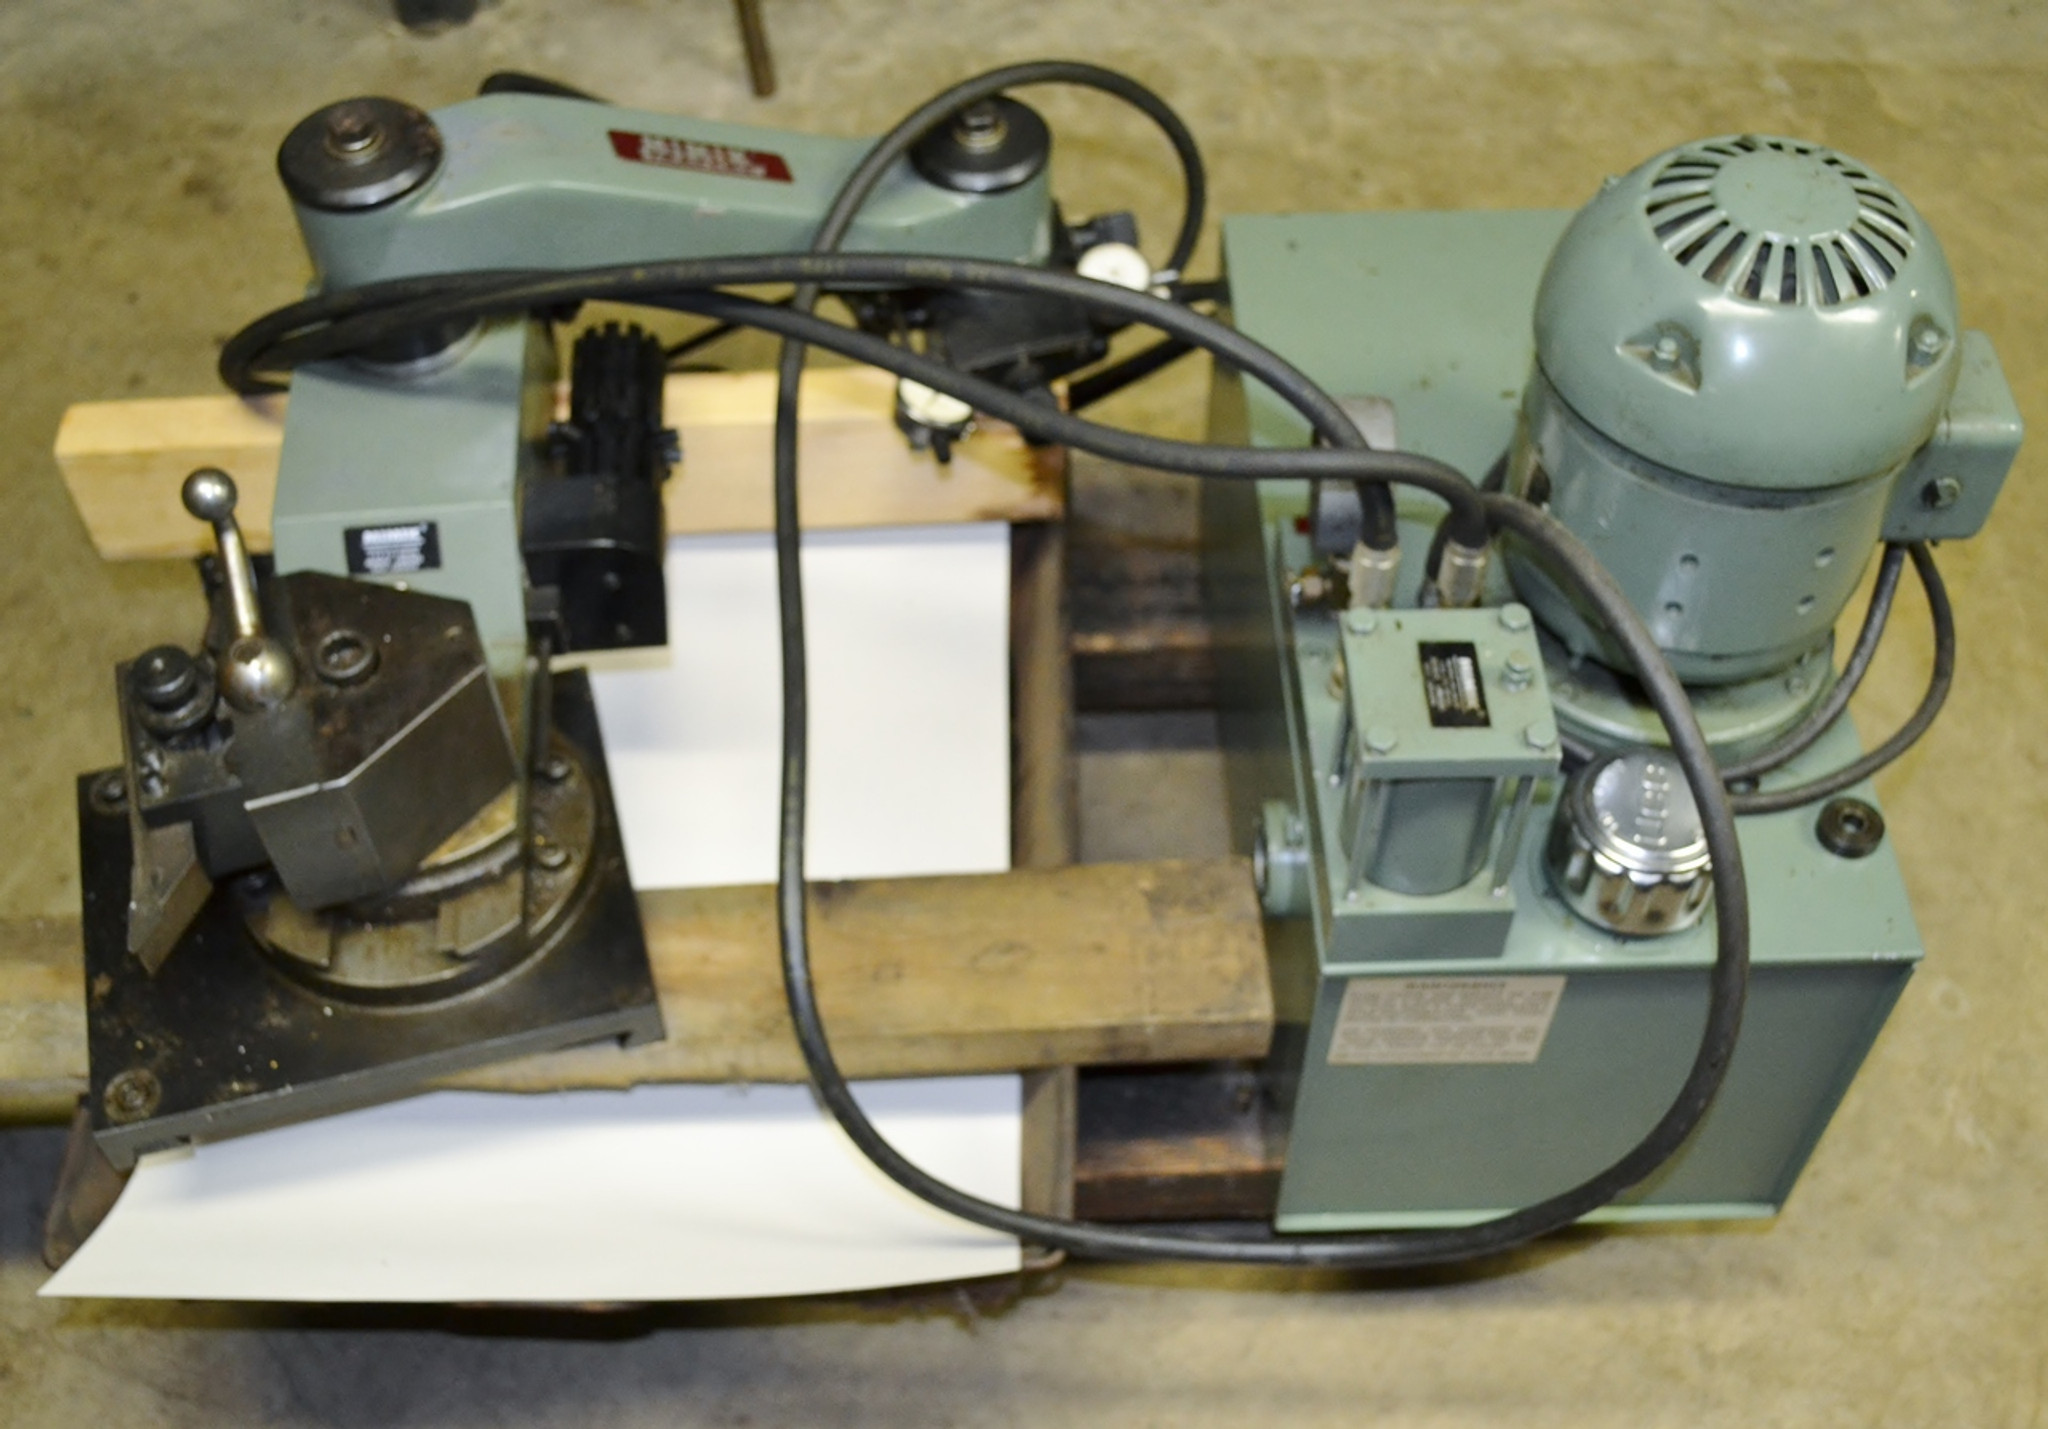 Mimik Hydraulic Tracing Unit 504 With 1824 Slide Assembly And Electrical Wiring Indicators